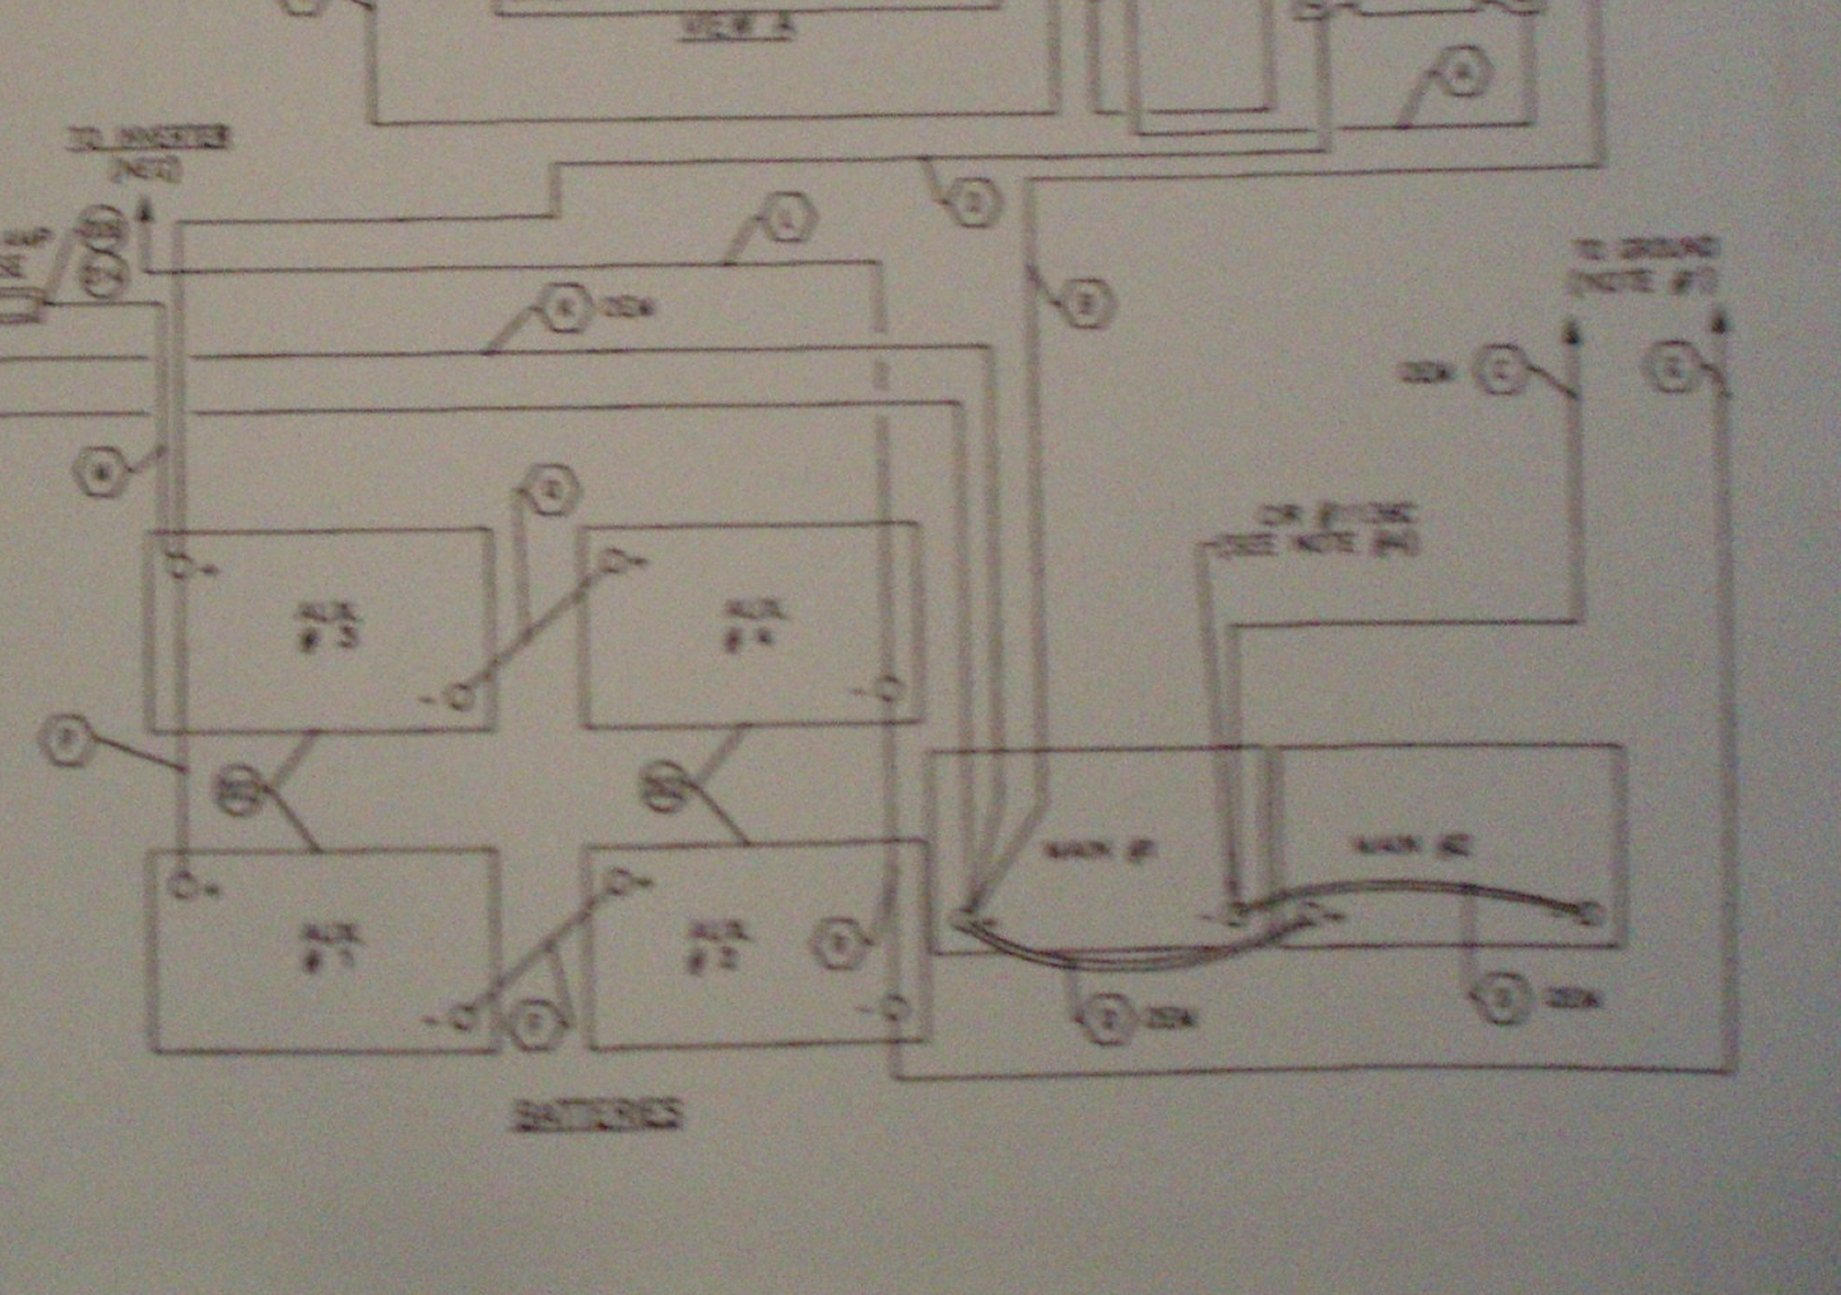 Need Battery Install Diagram For House Batteries Also